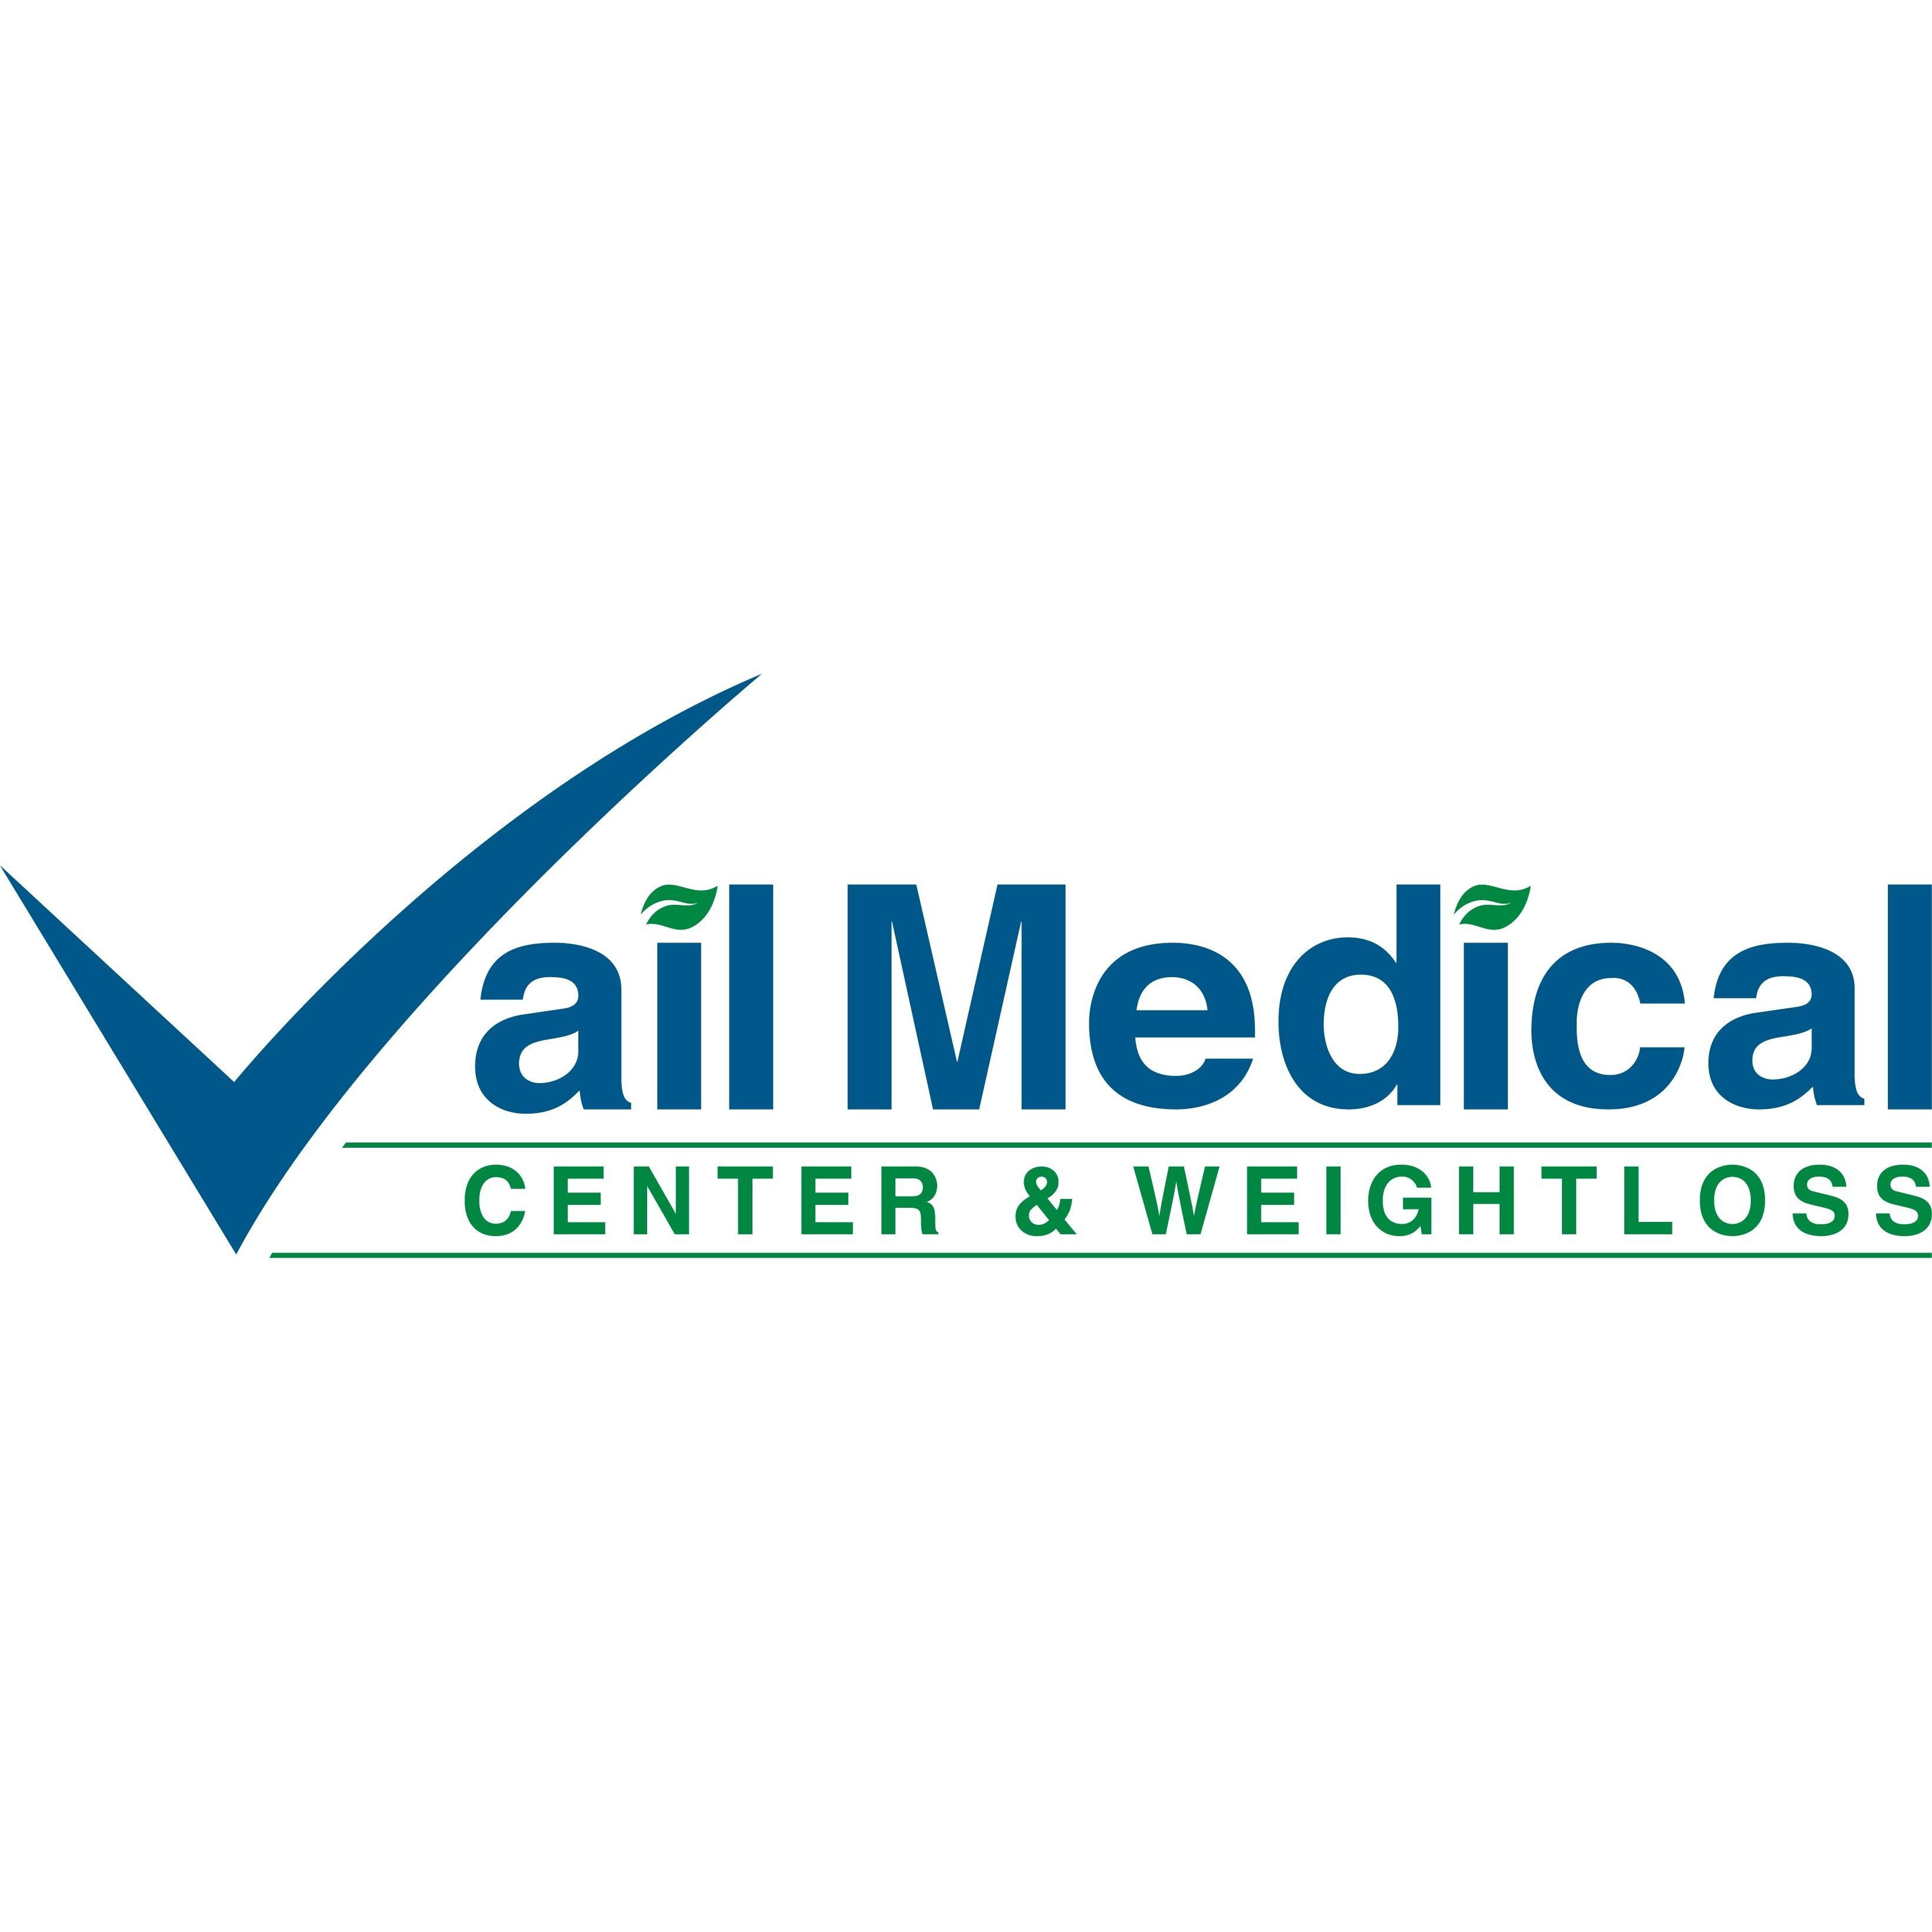 Vail Medical Center & Weight Loss